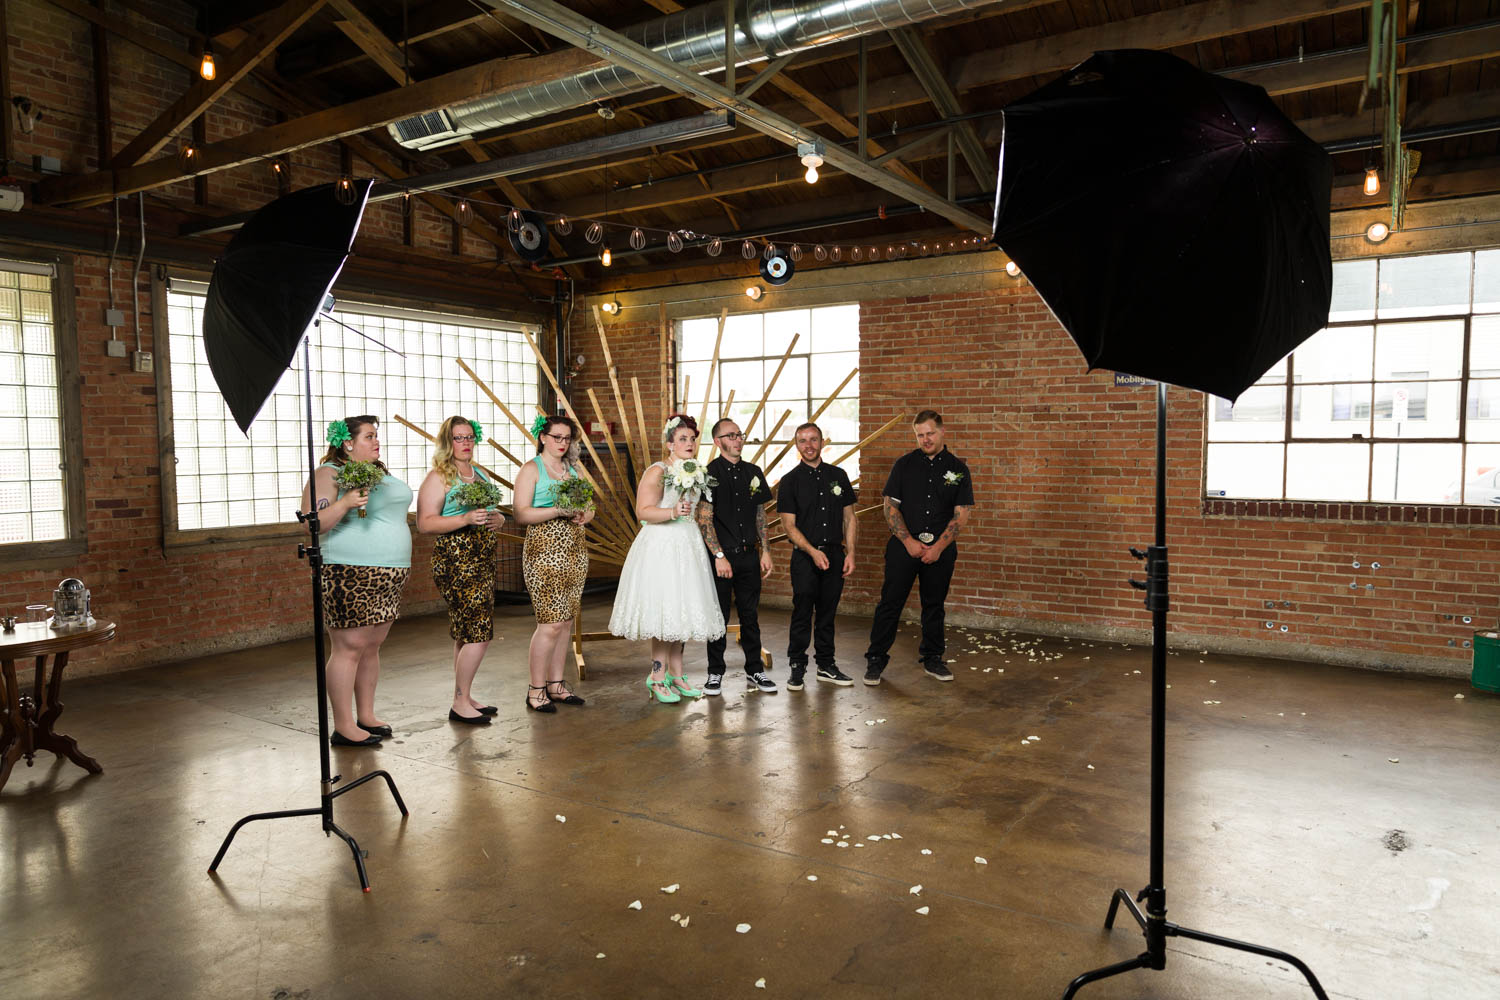 Behind the scenes of wedding portraits